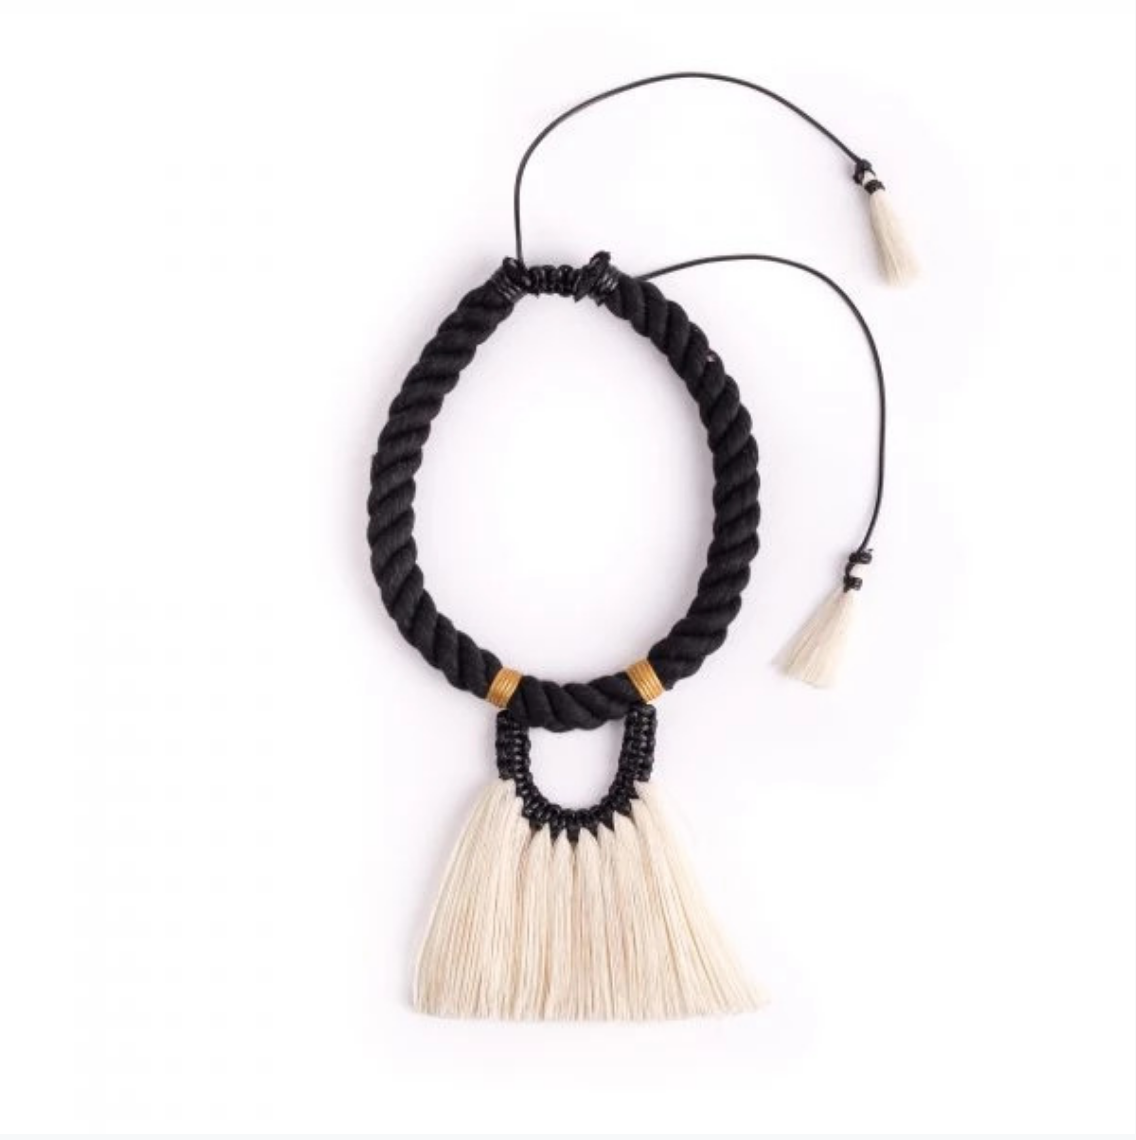 Caralarga Fantasma Natural Fiber Tassel Necklace IAH